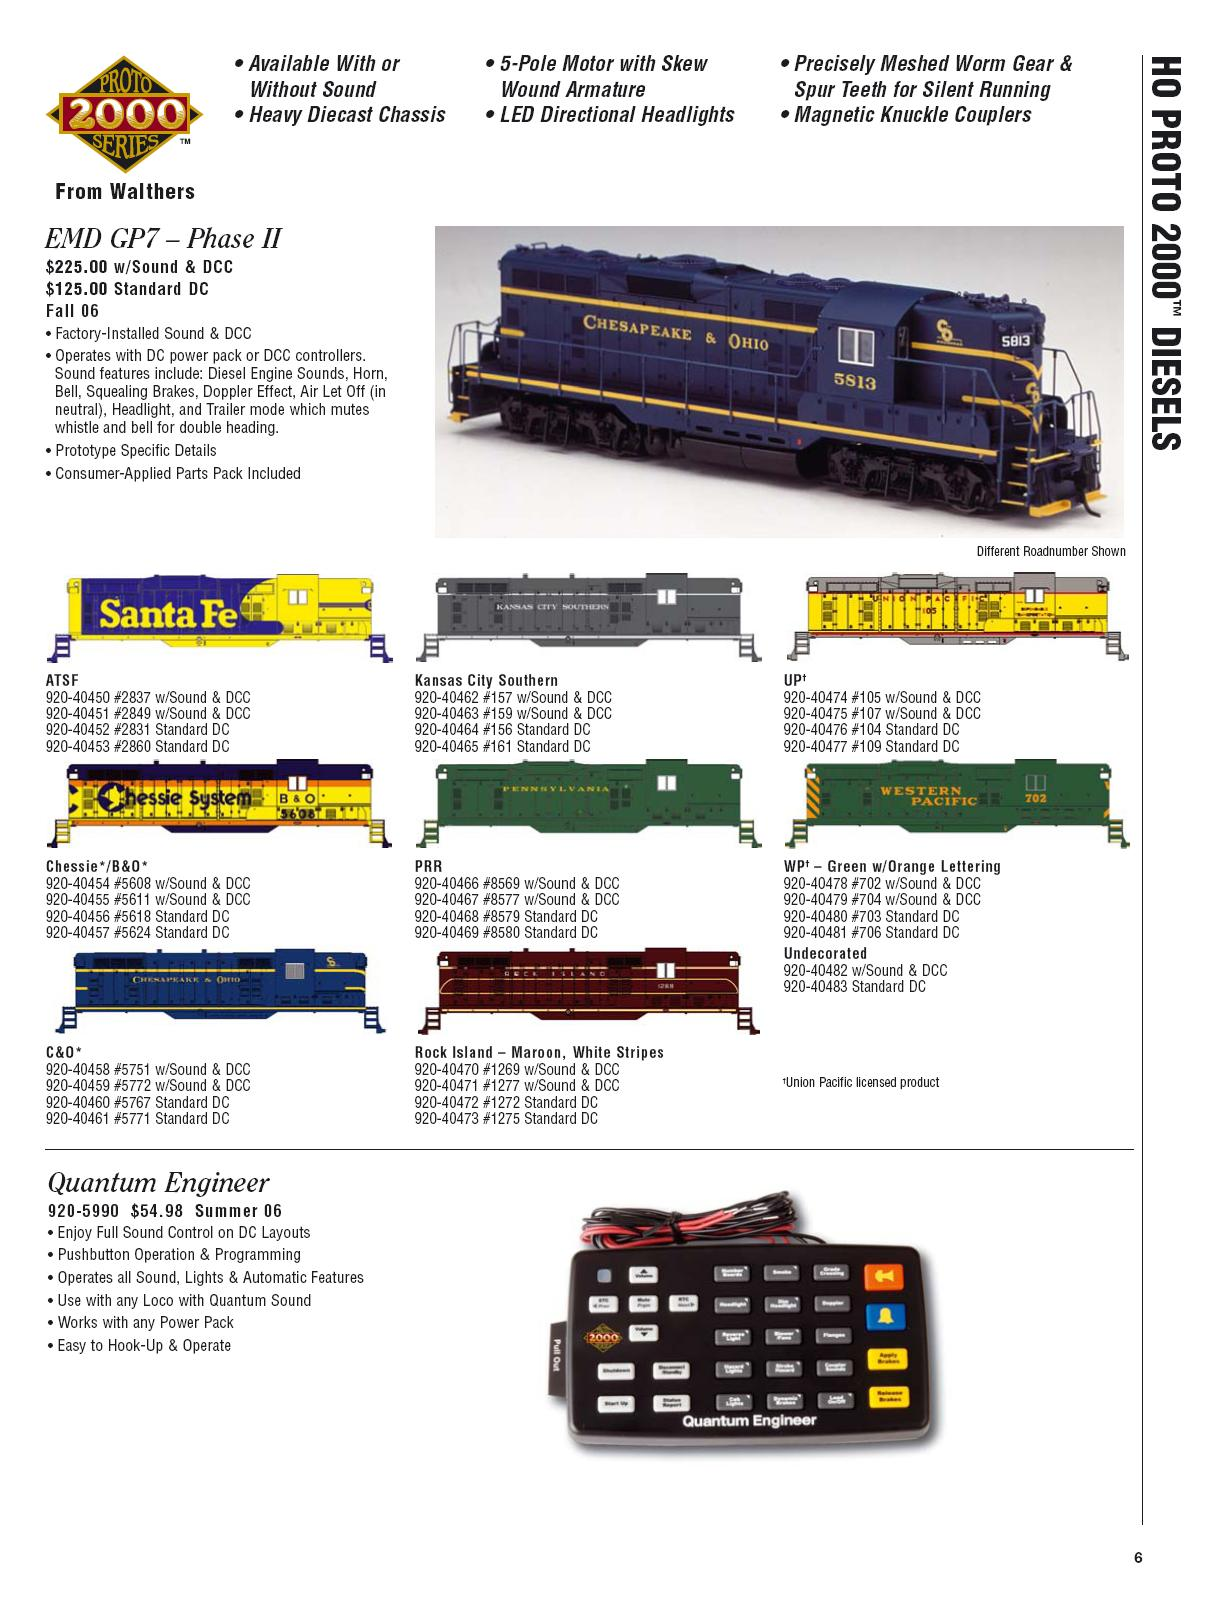 Walthers 2006 Cataloge Diesels page 3